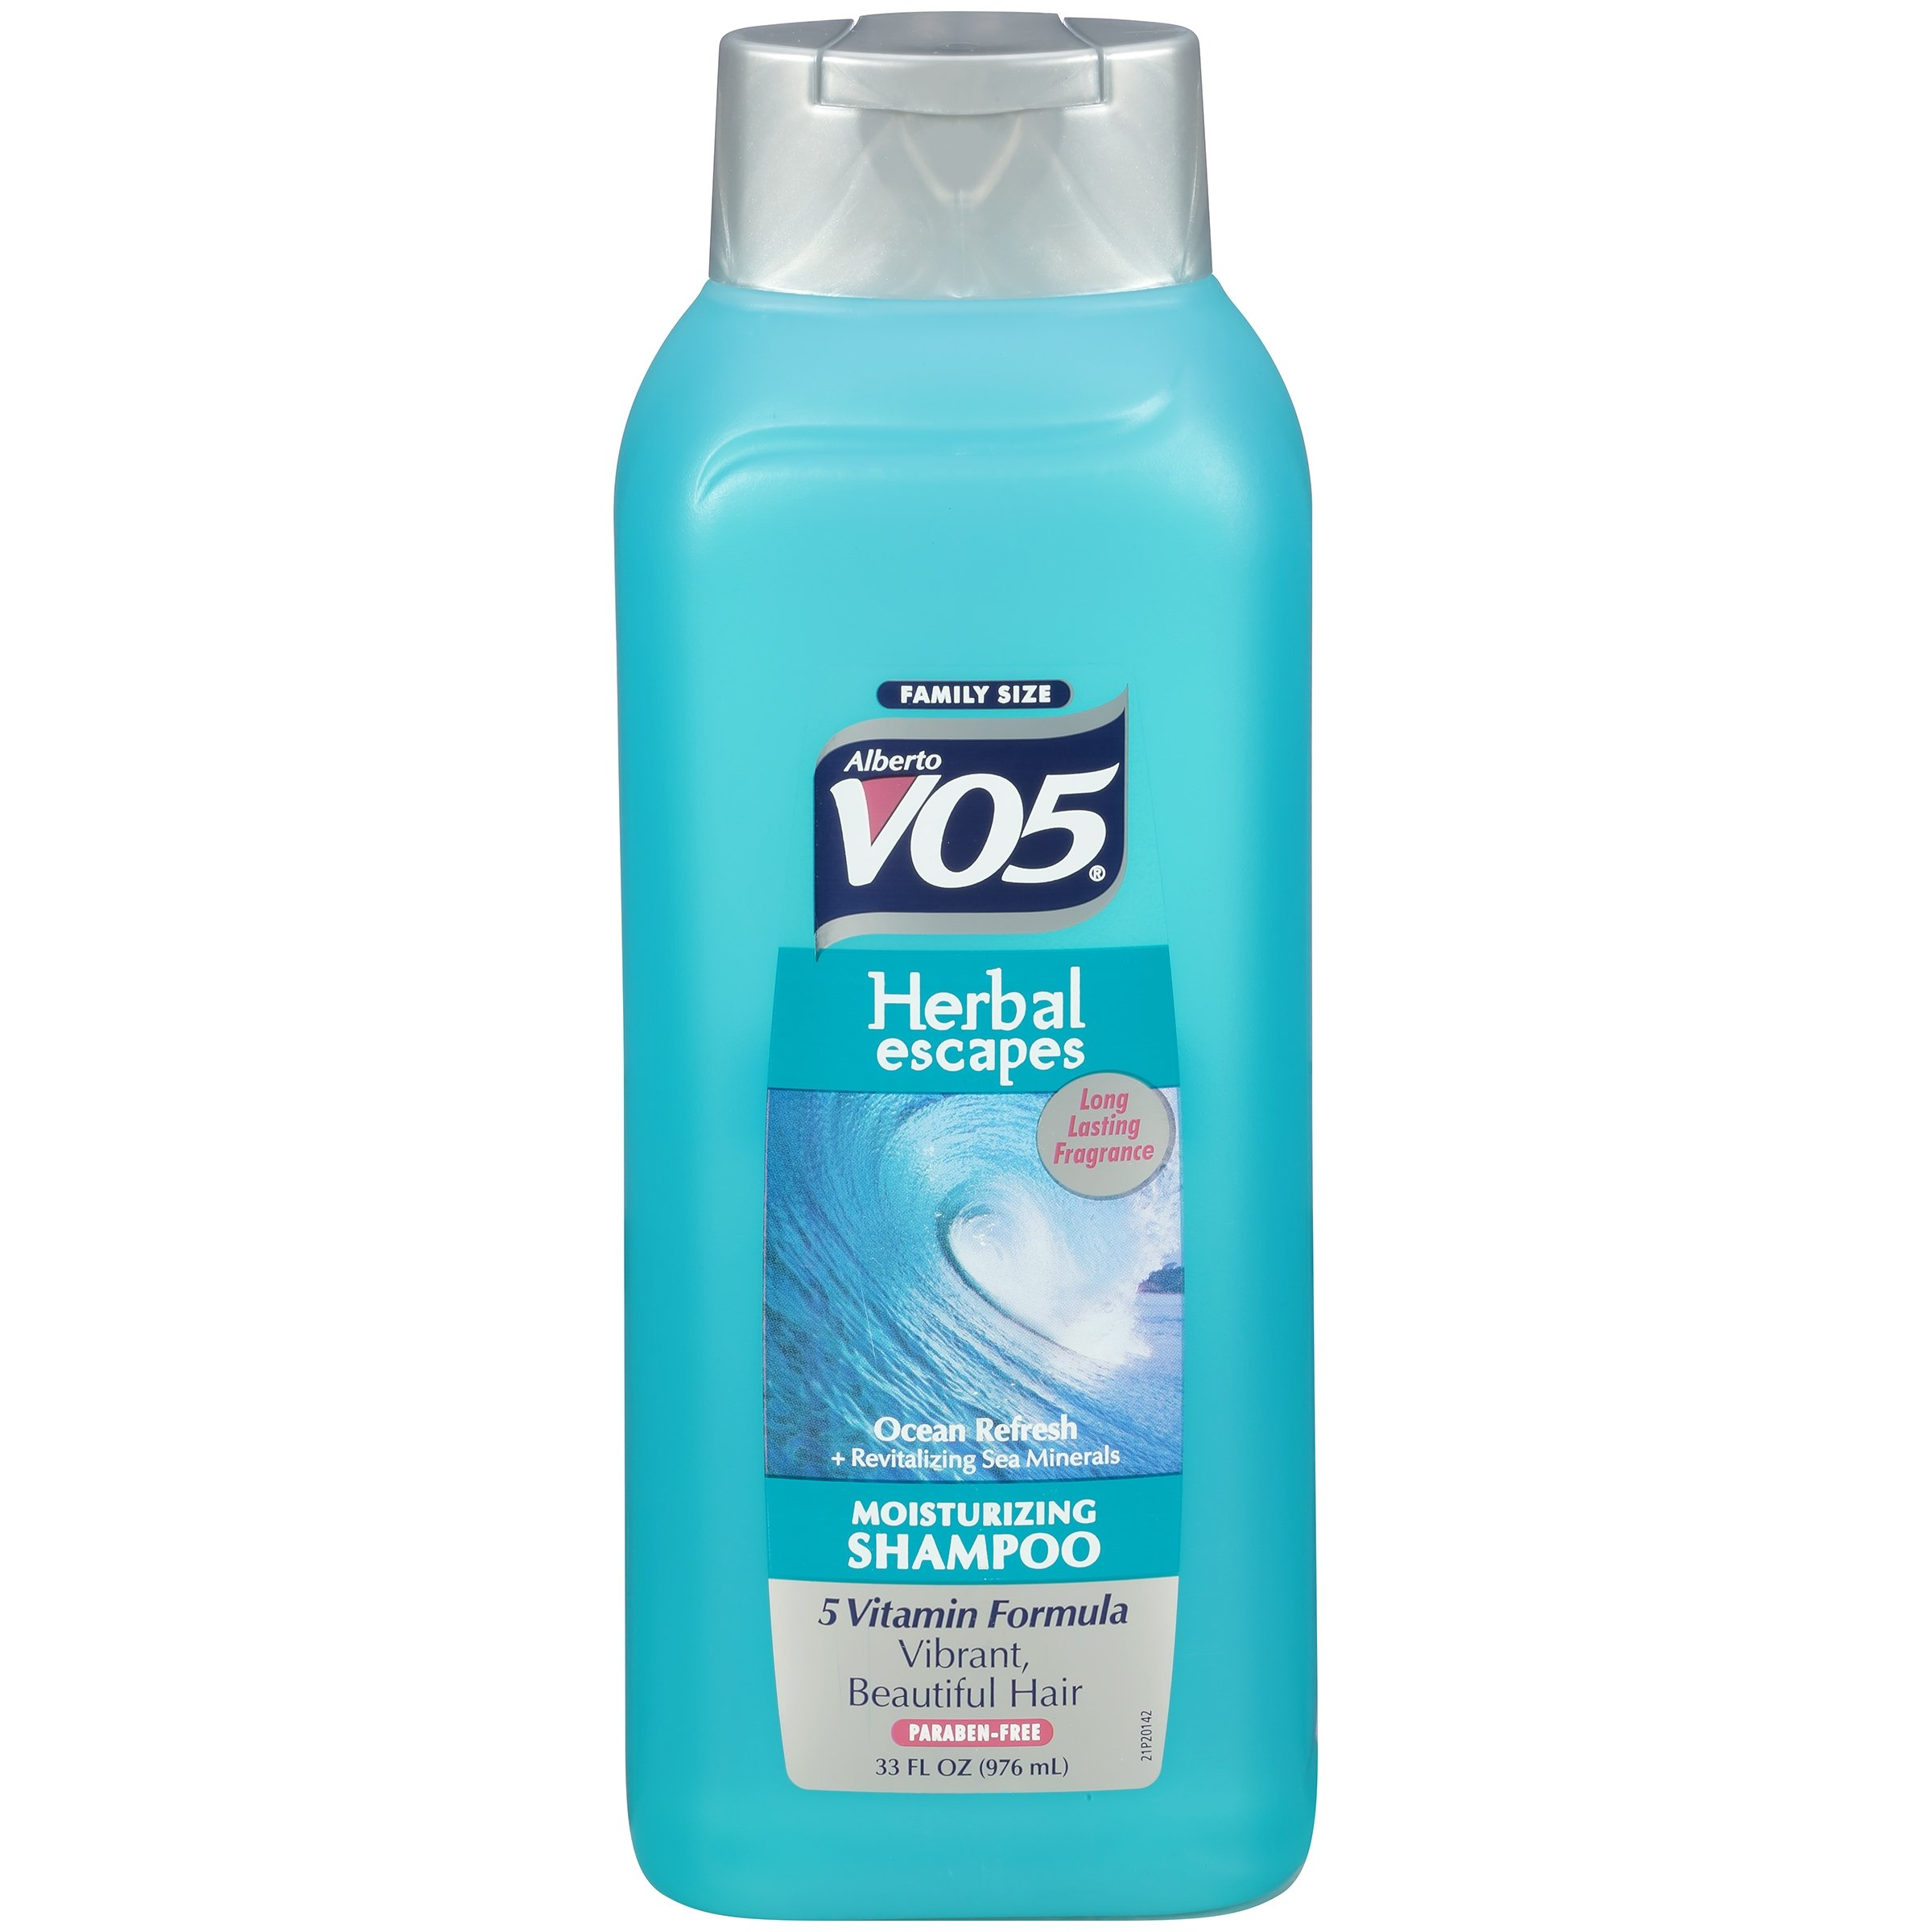 Vo5 Ocean Refresh Moisturizing Shampoo, 33 Fluid Ounce - 4 per case. by Vo5